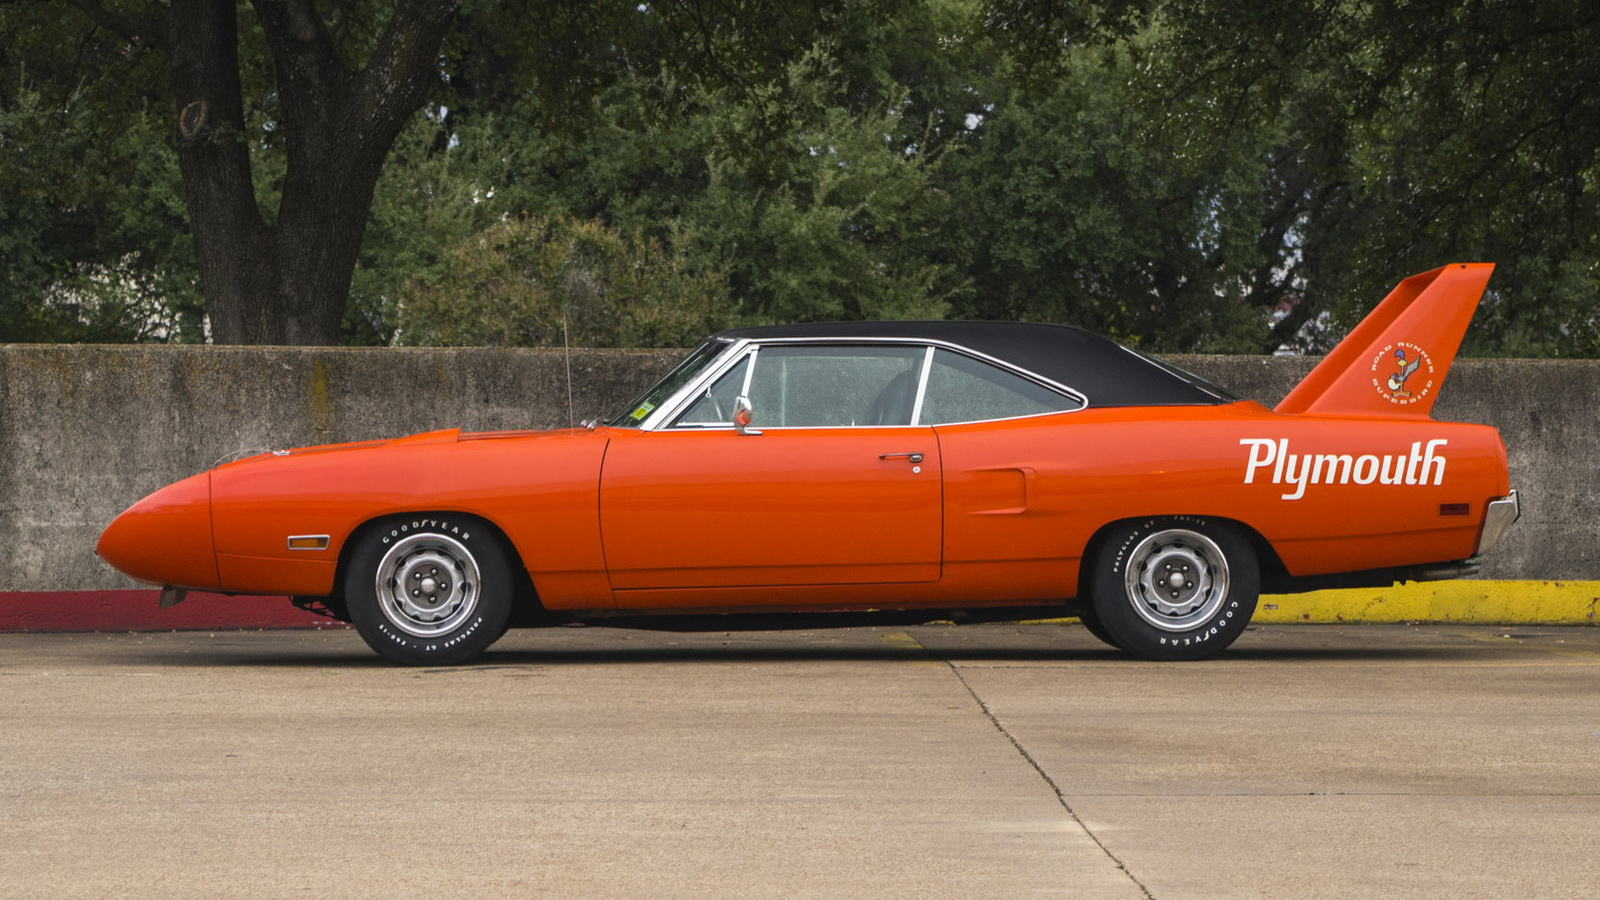 Plymouth Hemi Superbird 1970 in auction (13)